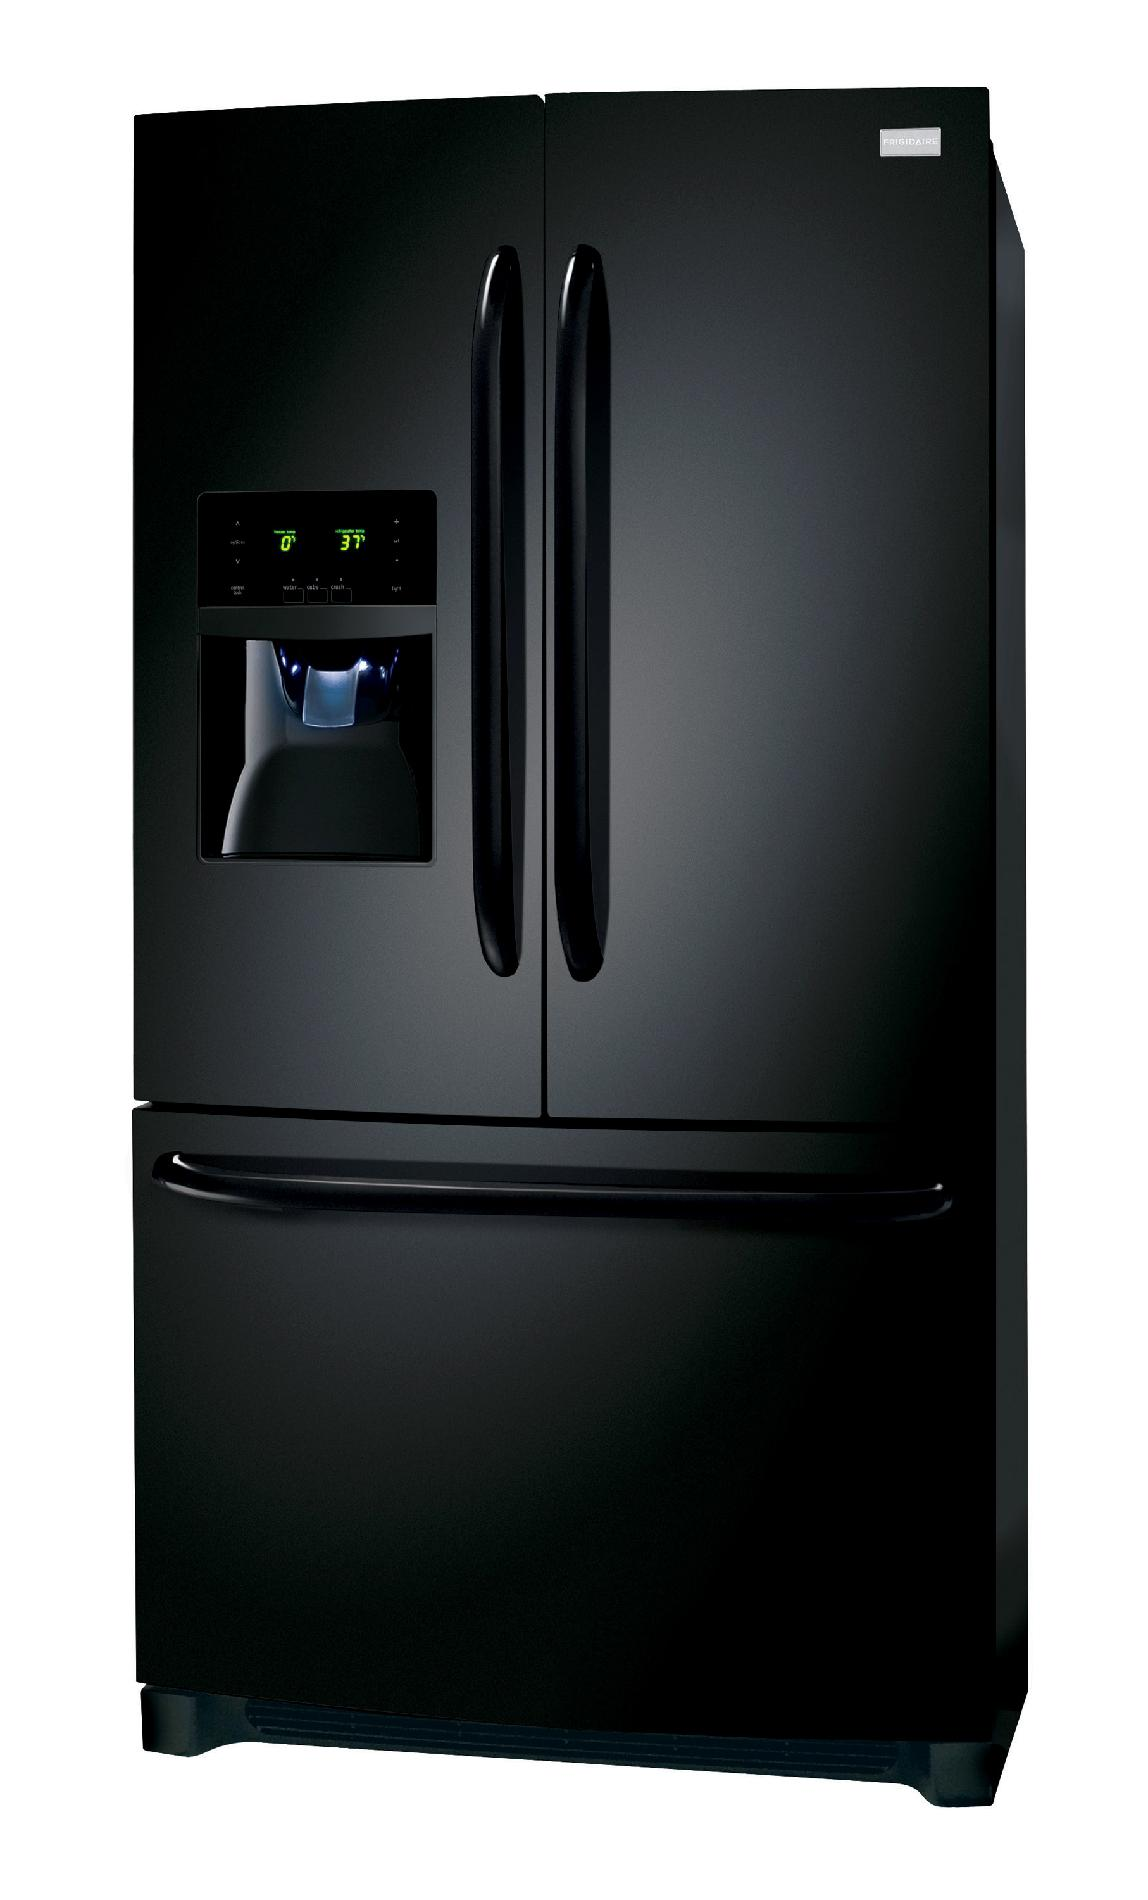 Frigidaire 26.7 cu. ft. French Door Refrigerator - Ebony Black